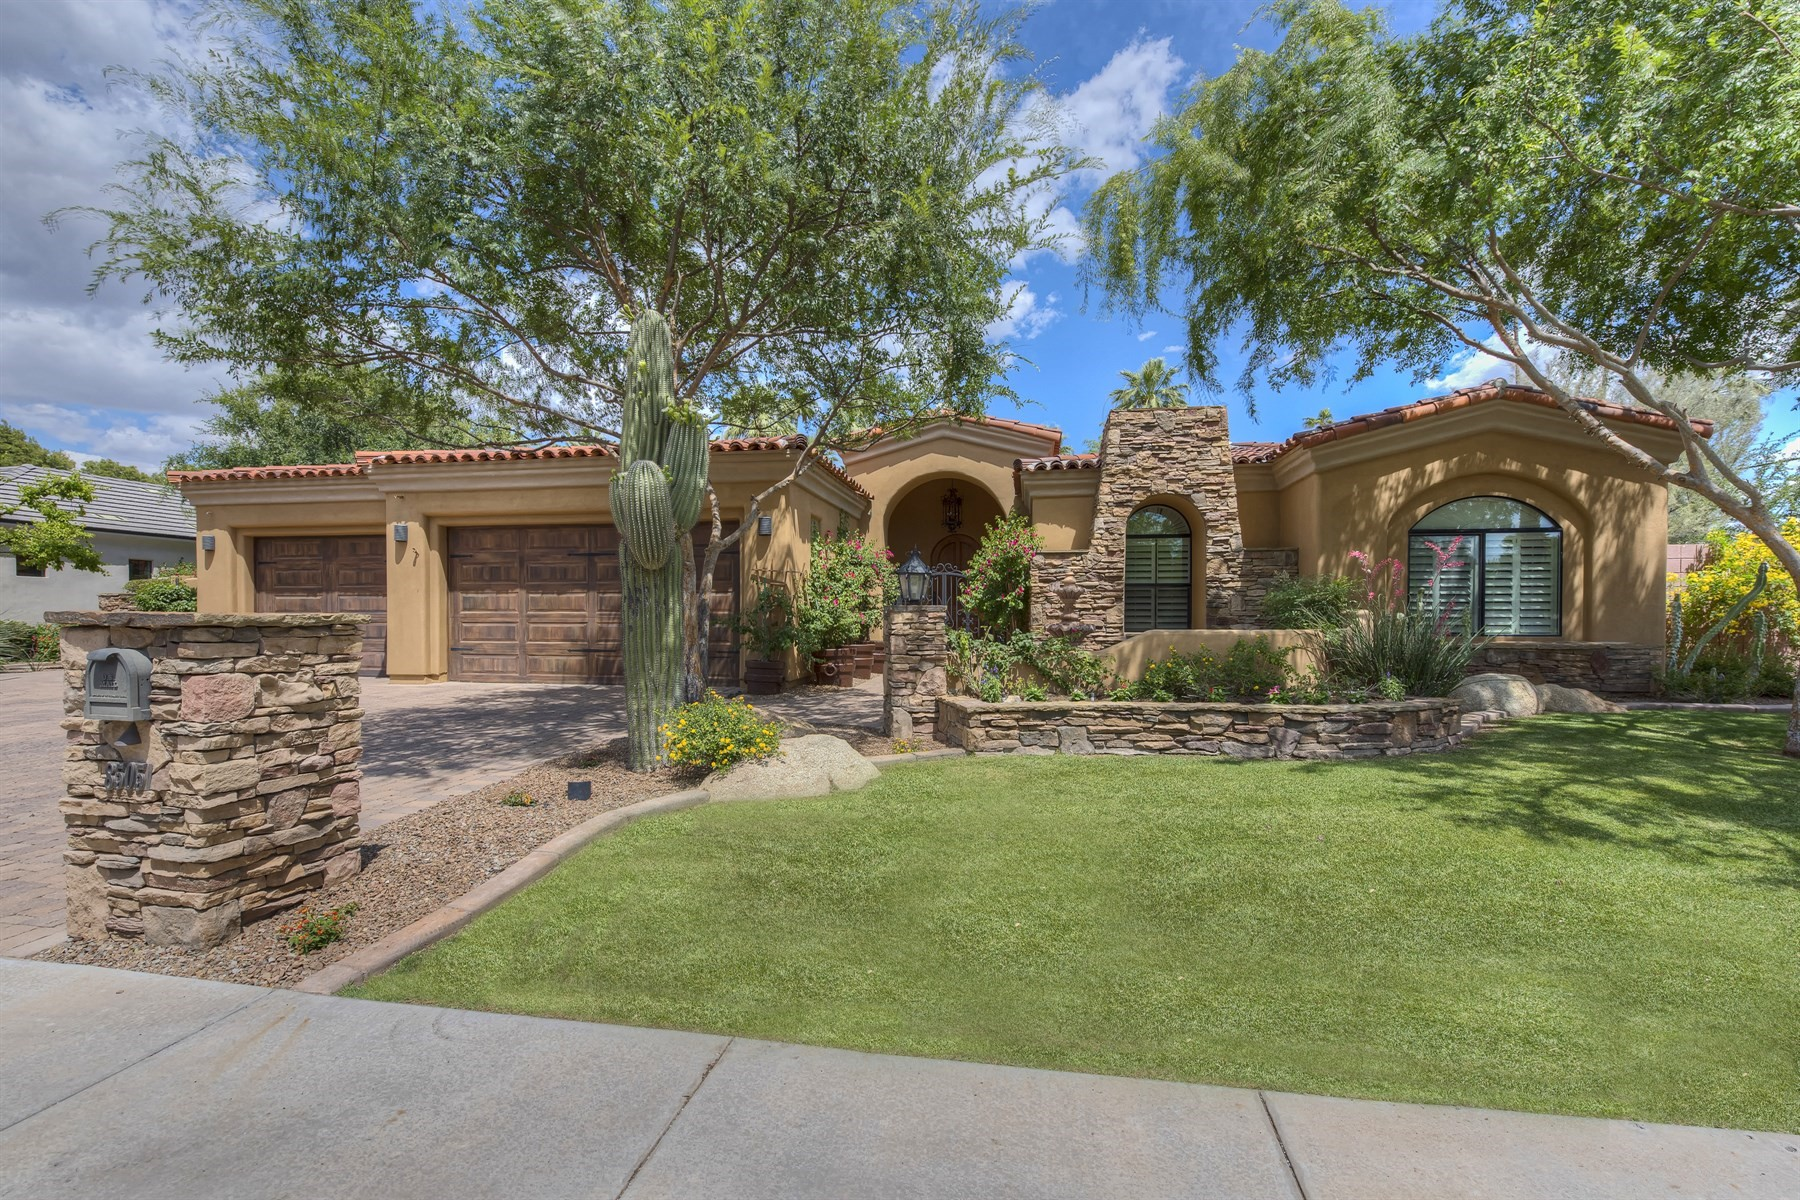 Single Family Home for Sale at Beautiful single level home in North Central Royal Palm Area 8505 N 13th Ave Phoenix, Arizona, 85021 United States